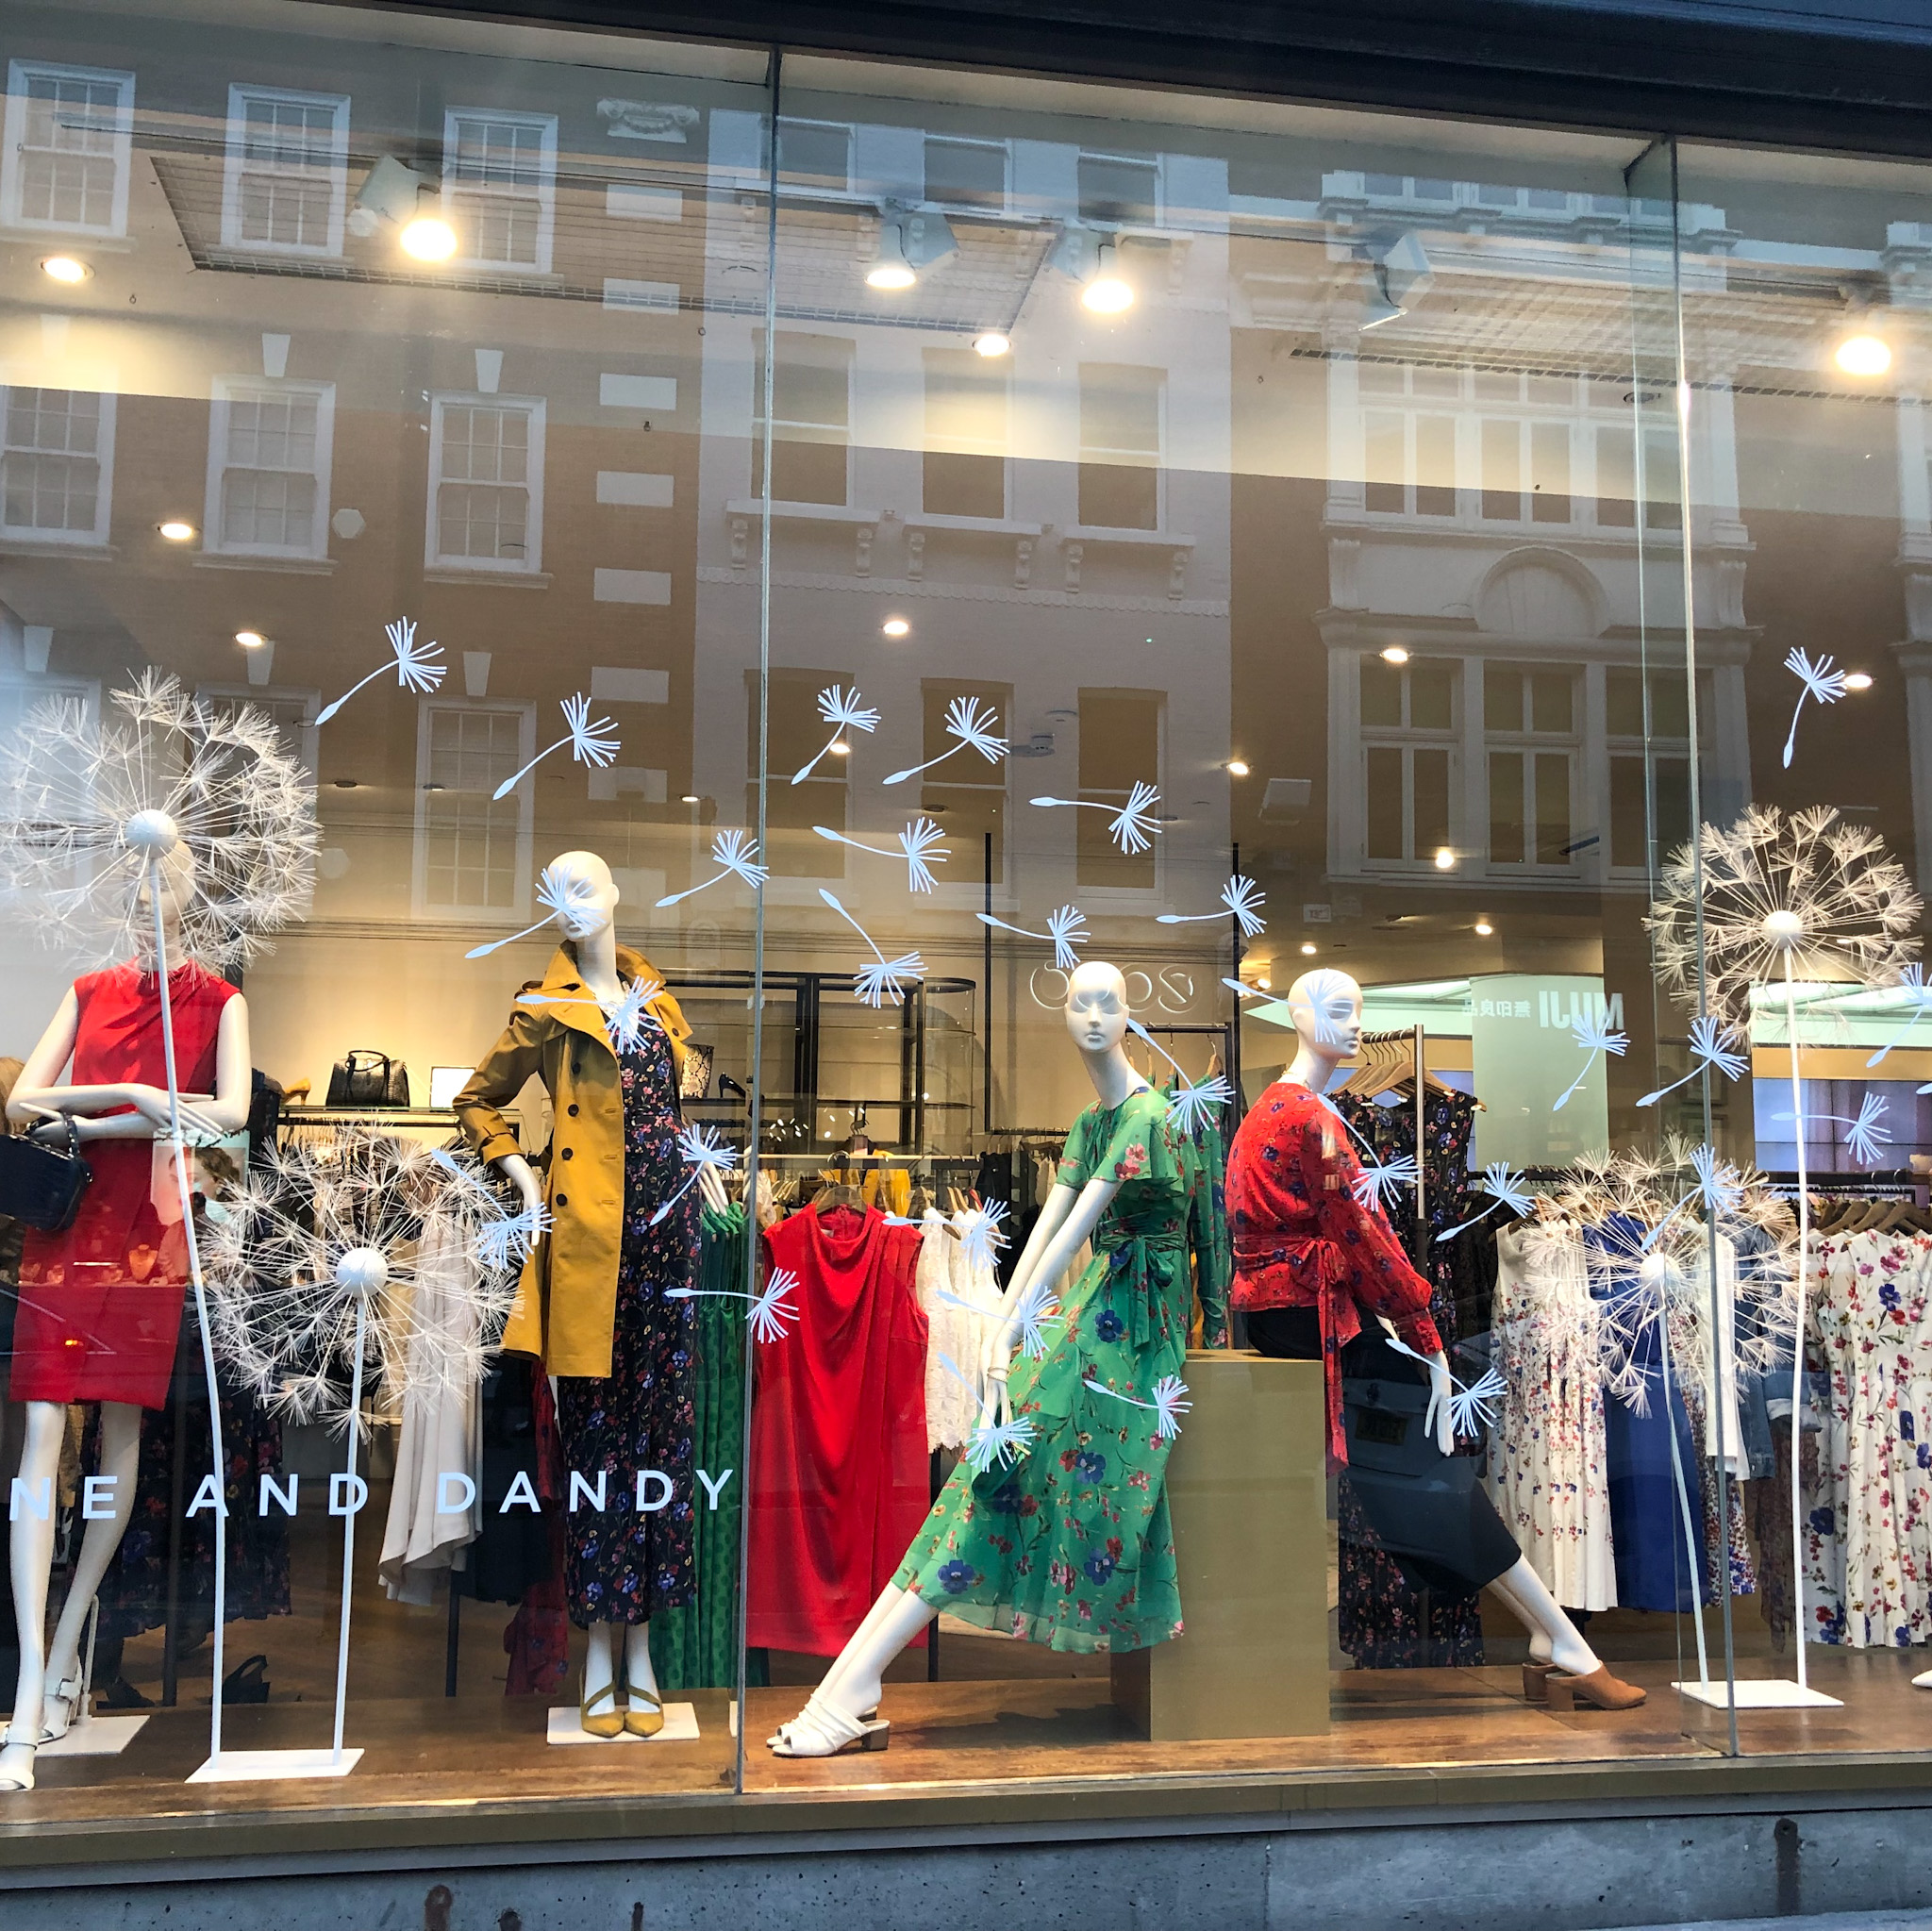 Giant Dandlelions window display